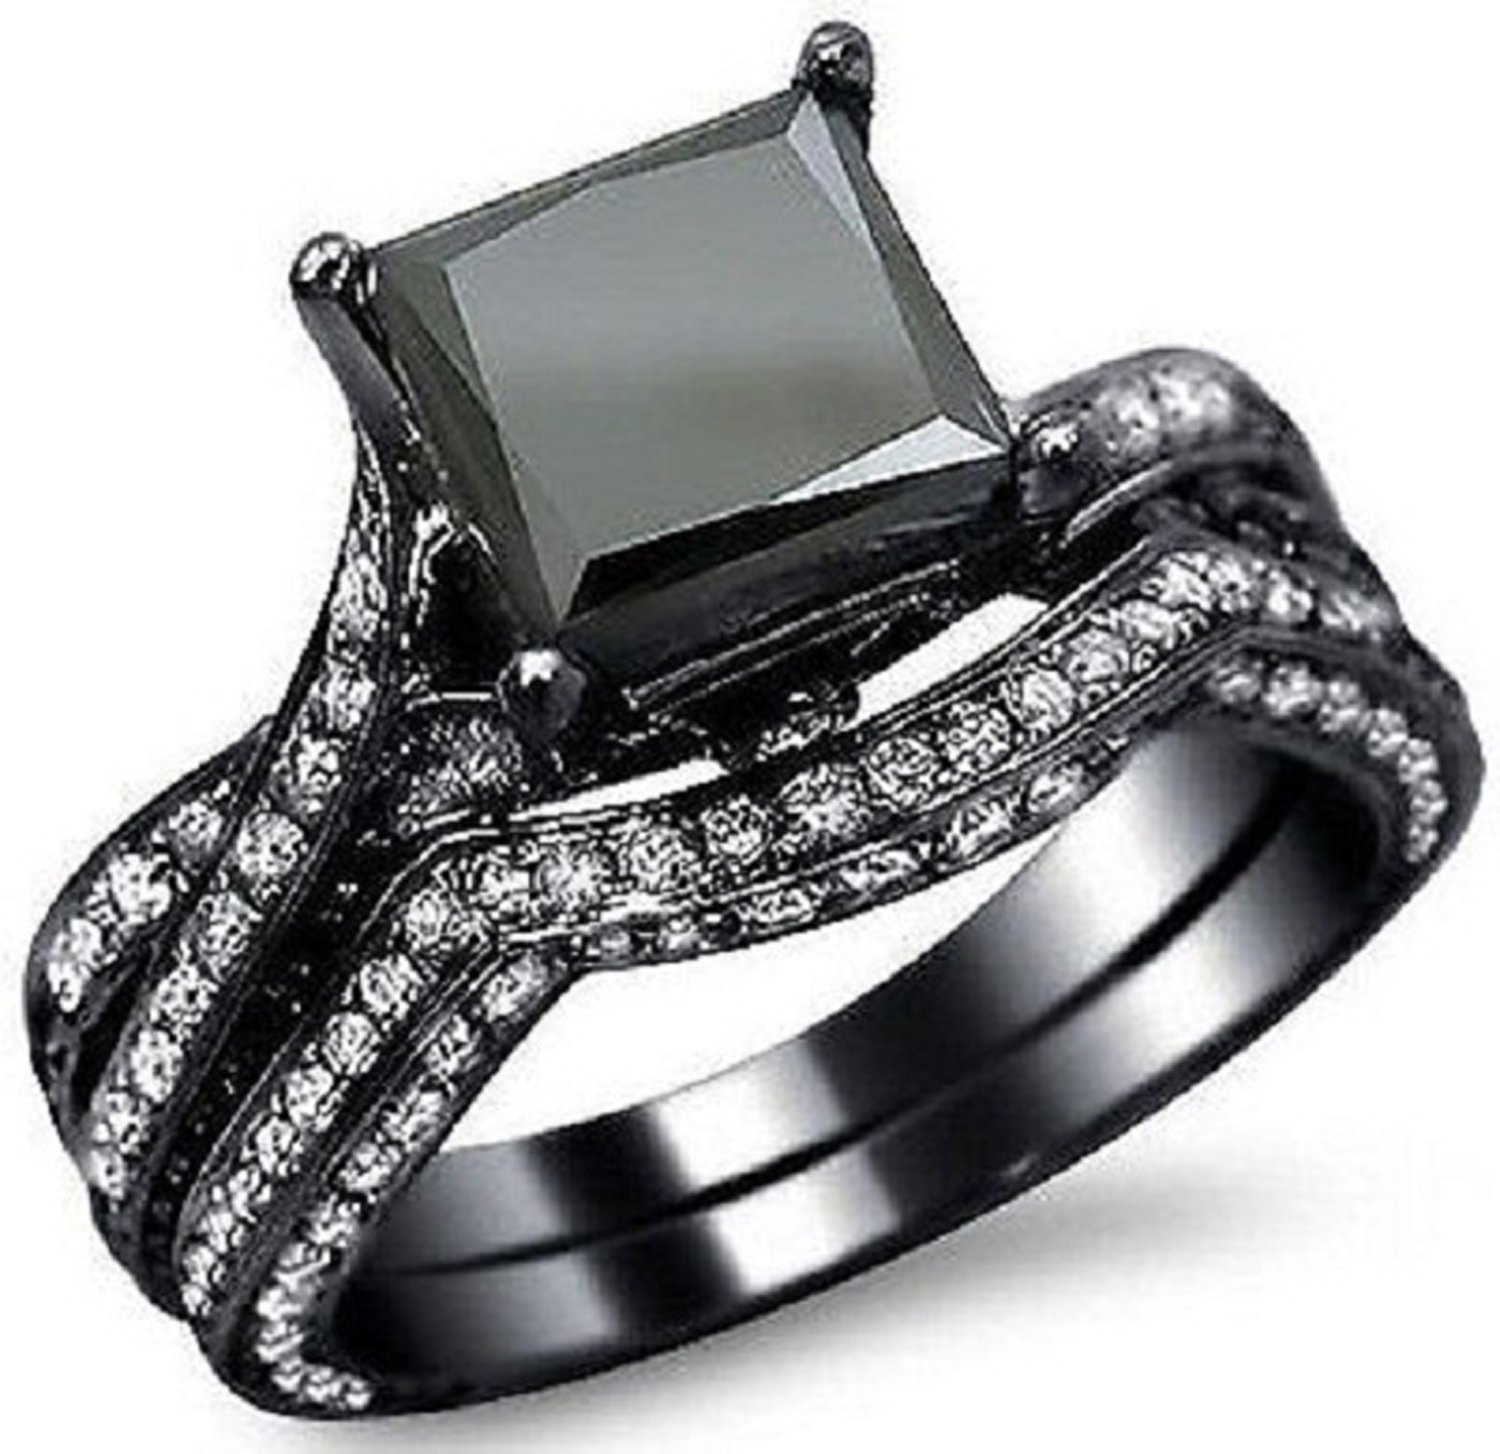 Silvernshine Jewels 3.25 Ct Black Sim Diamond Engagement Ring Bridal Wedding Set 14K Black Gold Fn